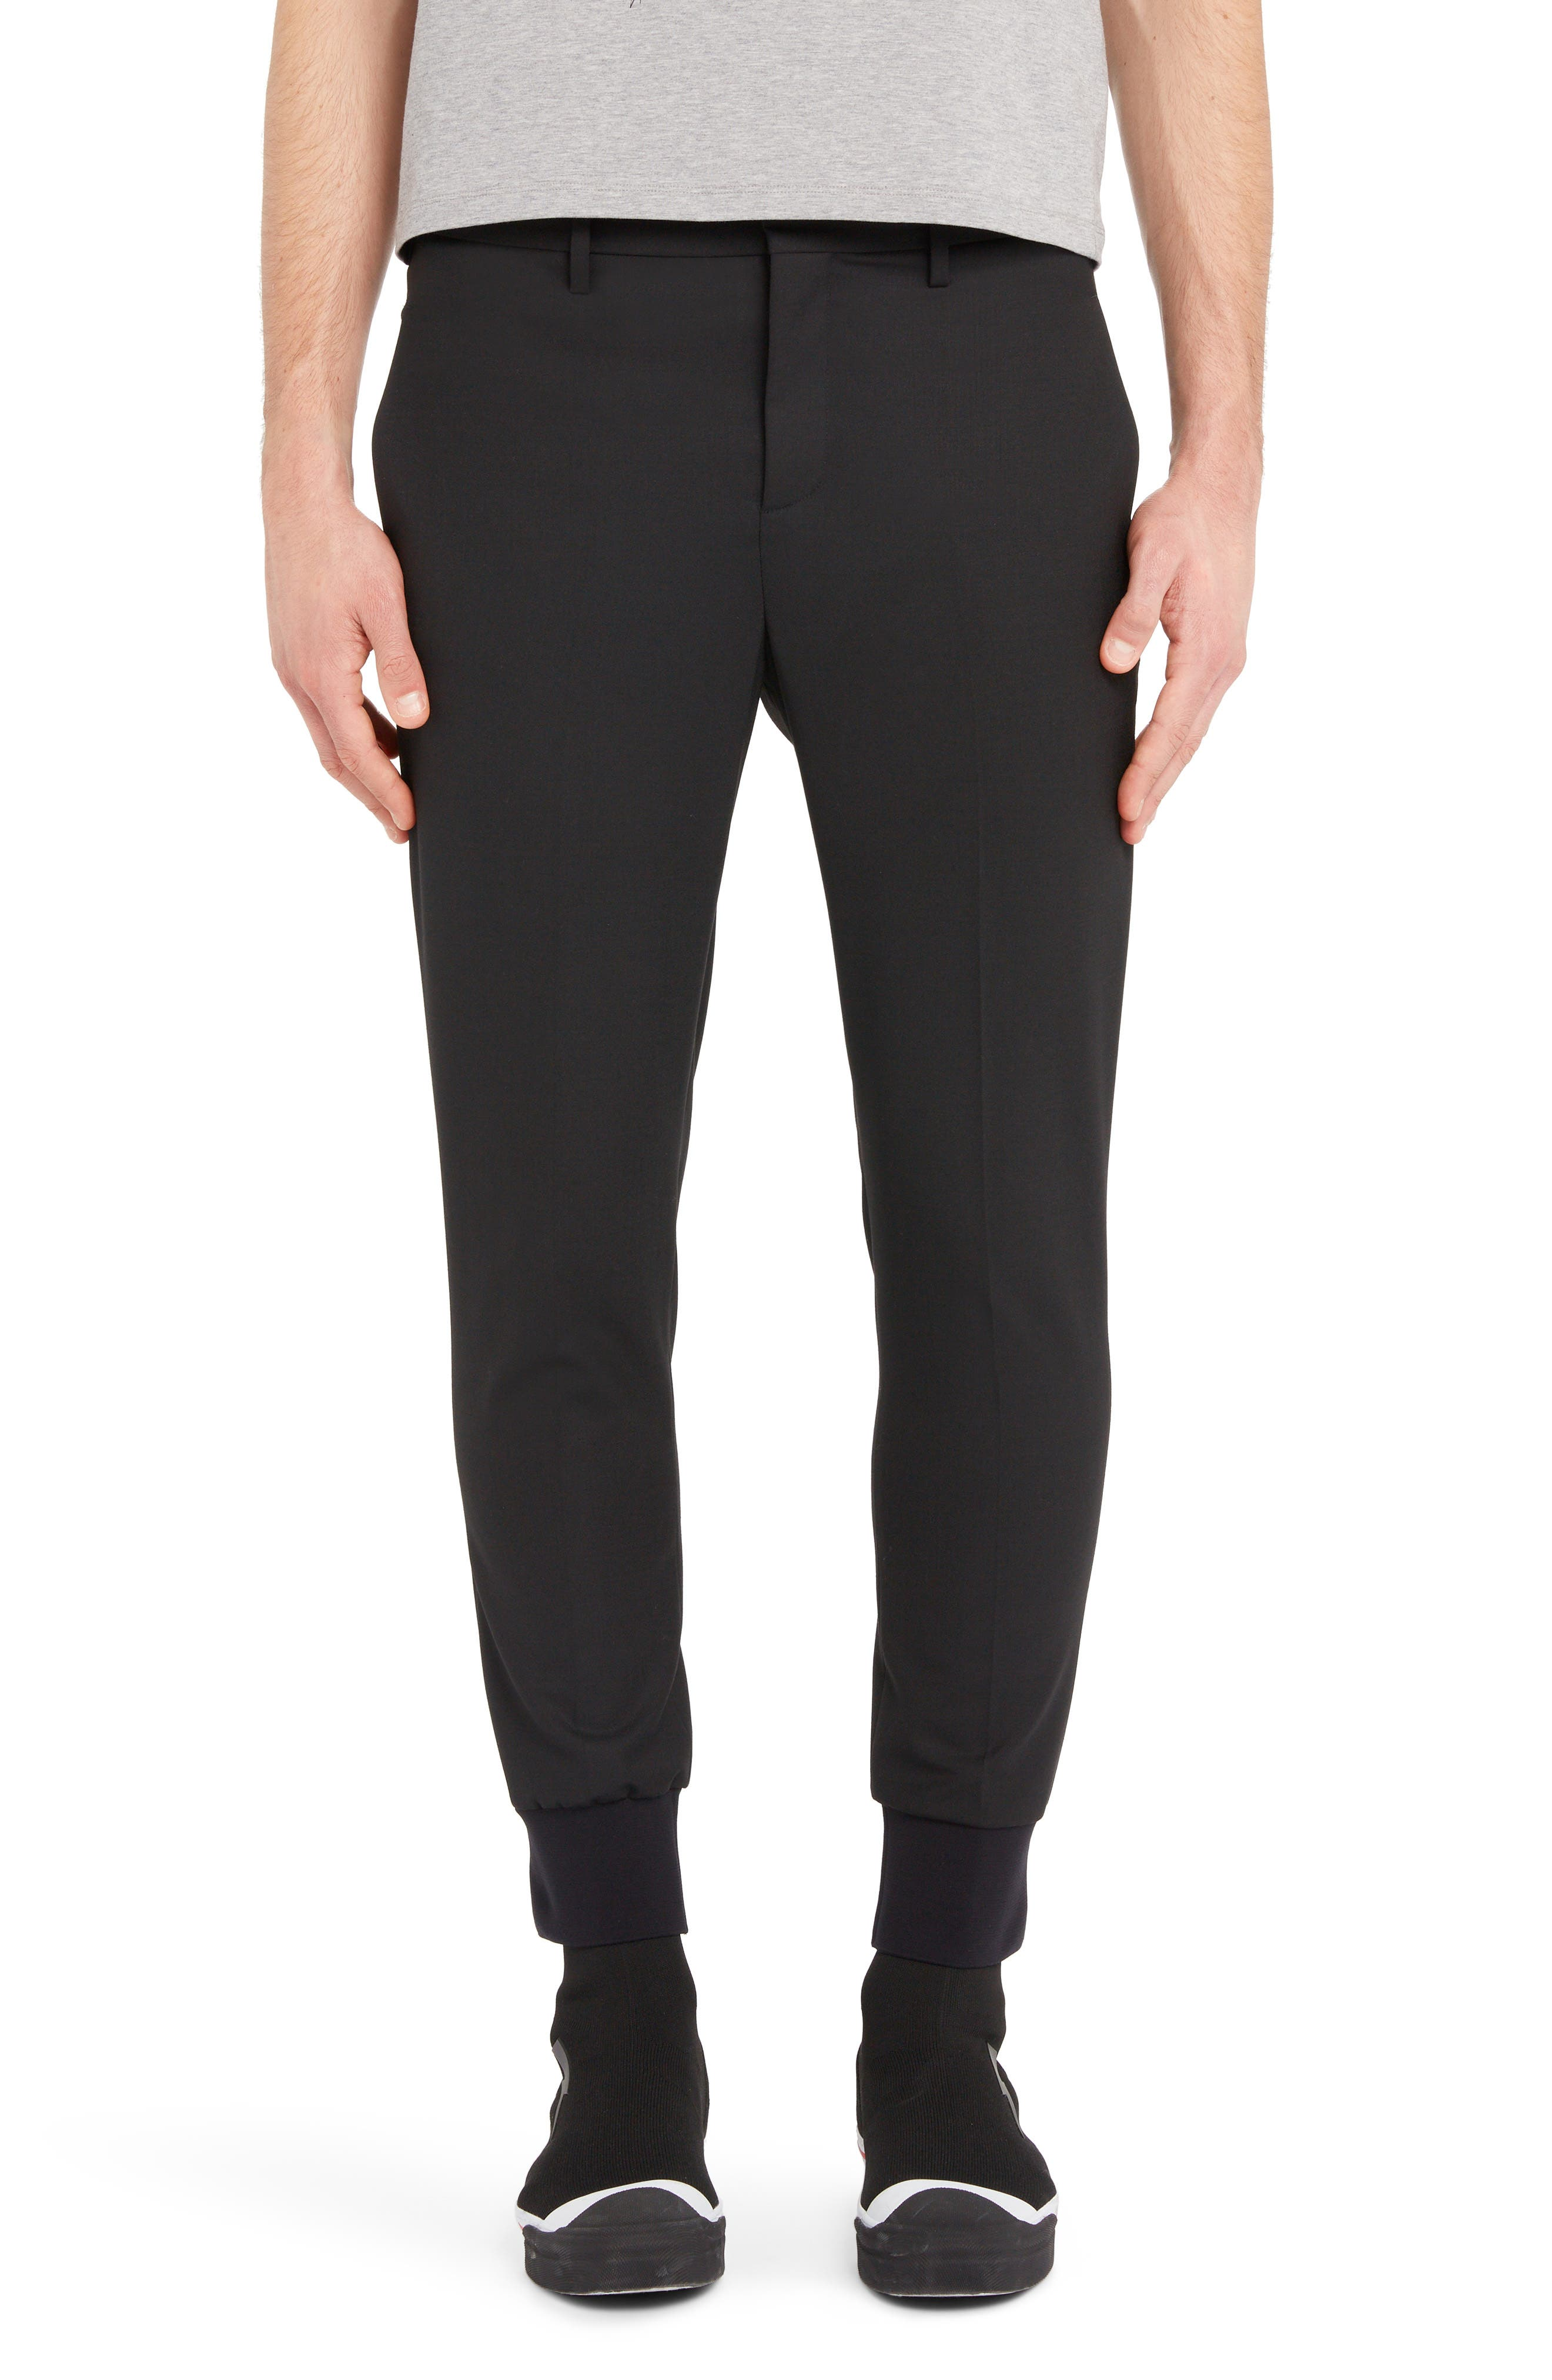 NEIL BARRETT Ribbed Cuff Trousers, Main, color, BLACK